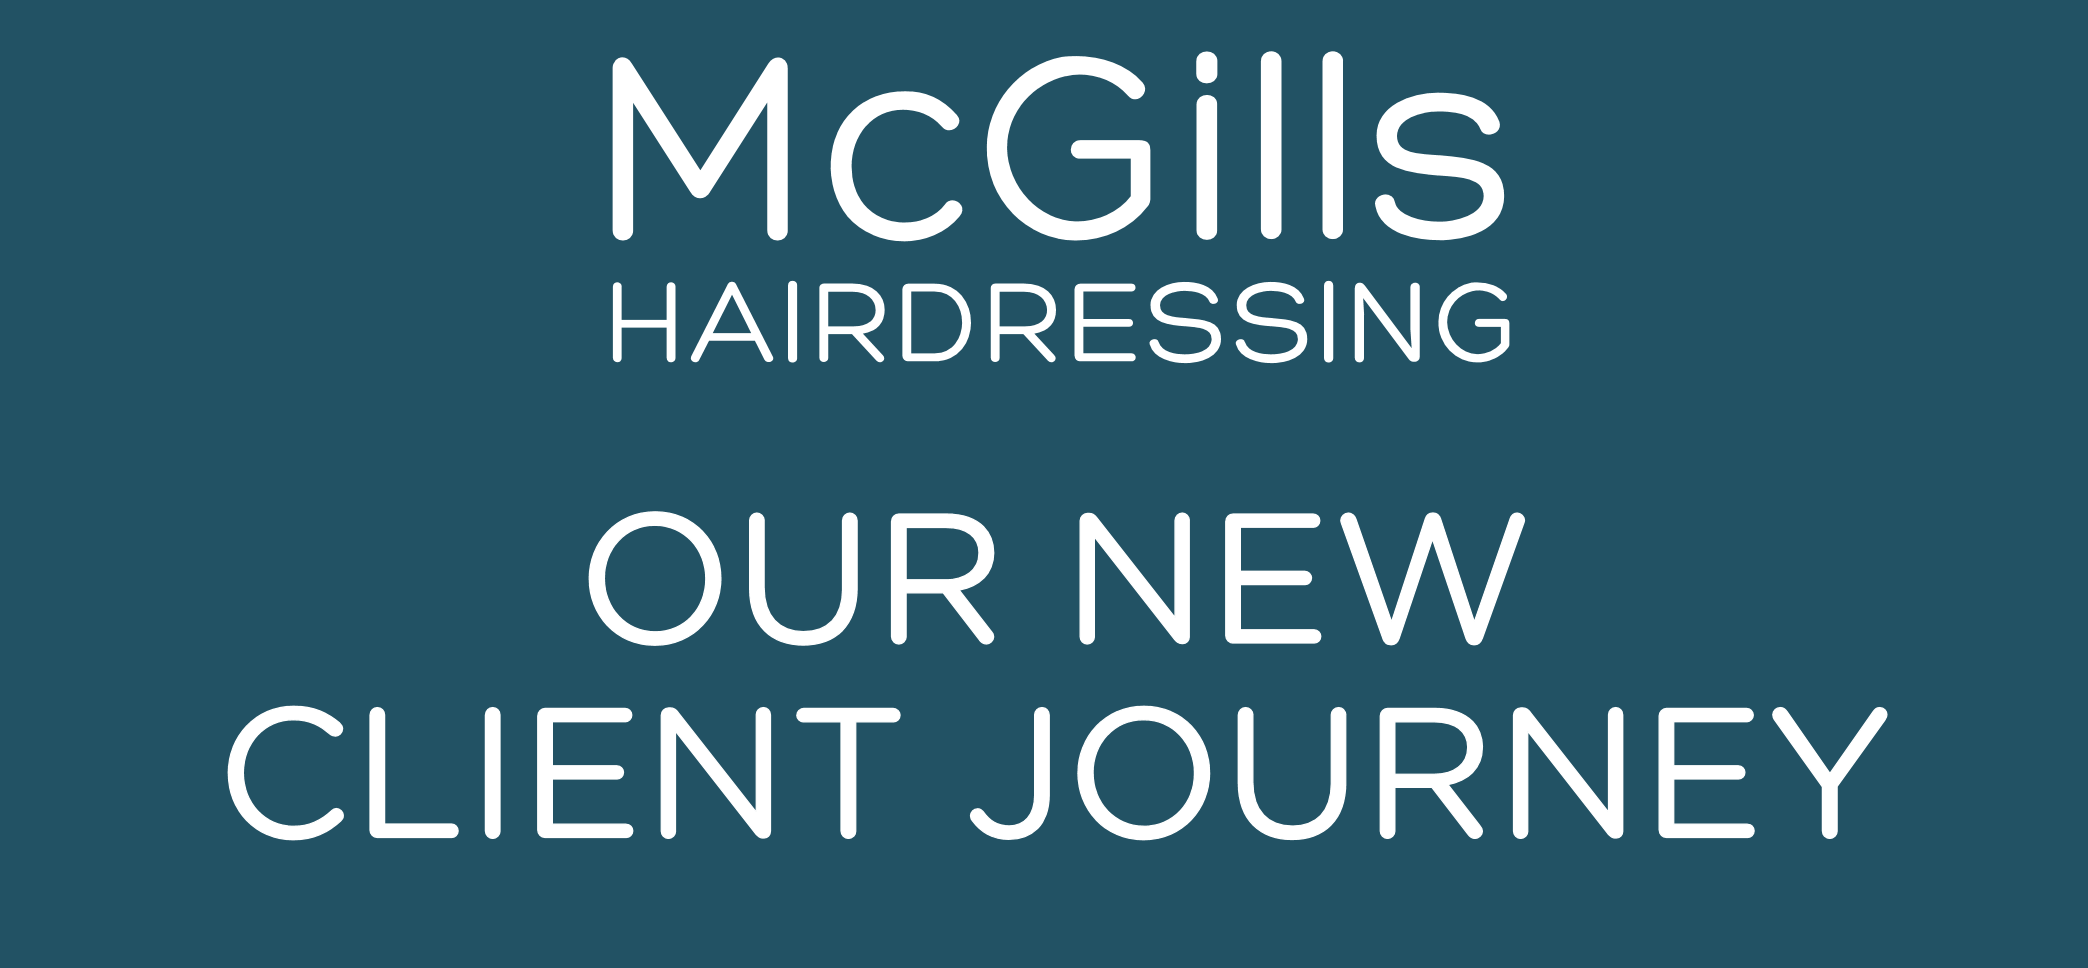 McGills Client Journey, McGills Hair Salon in Edinburgh